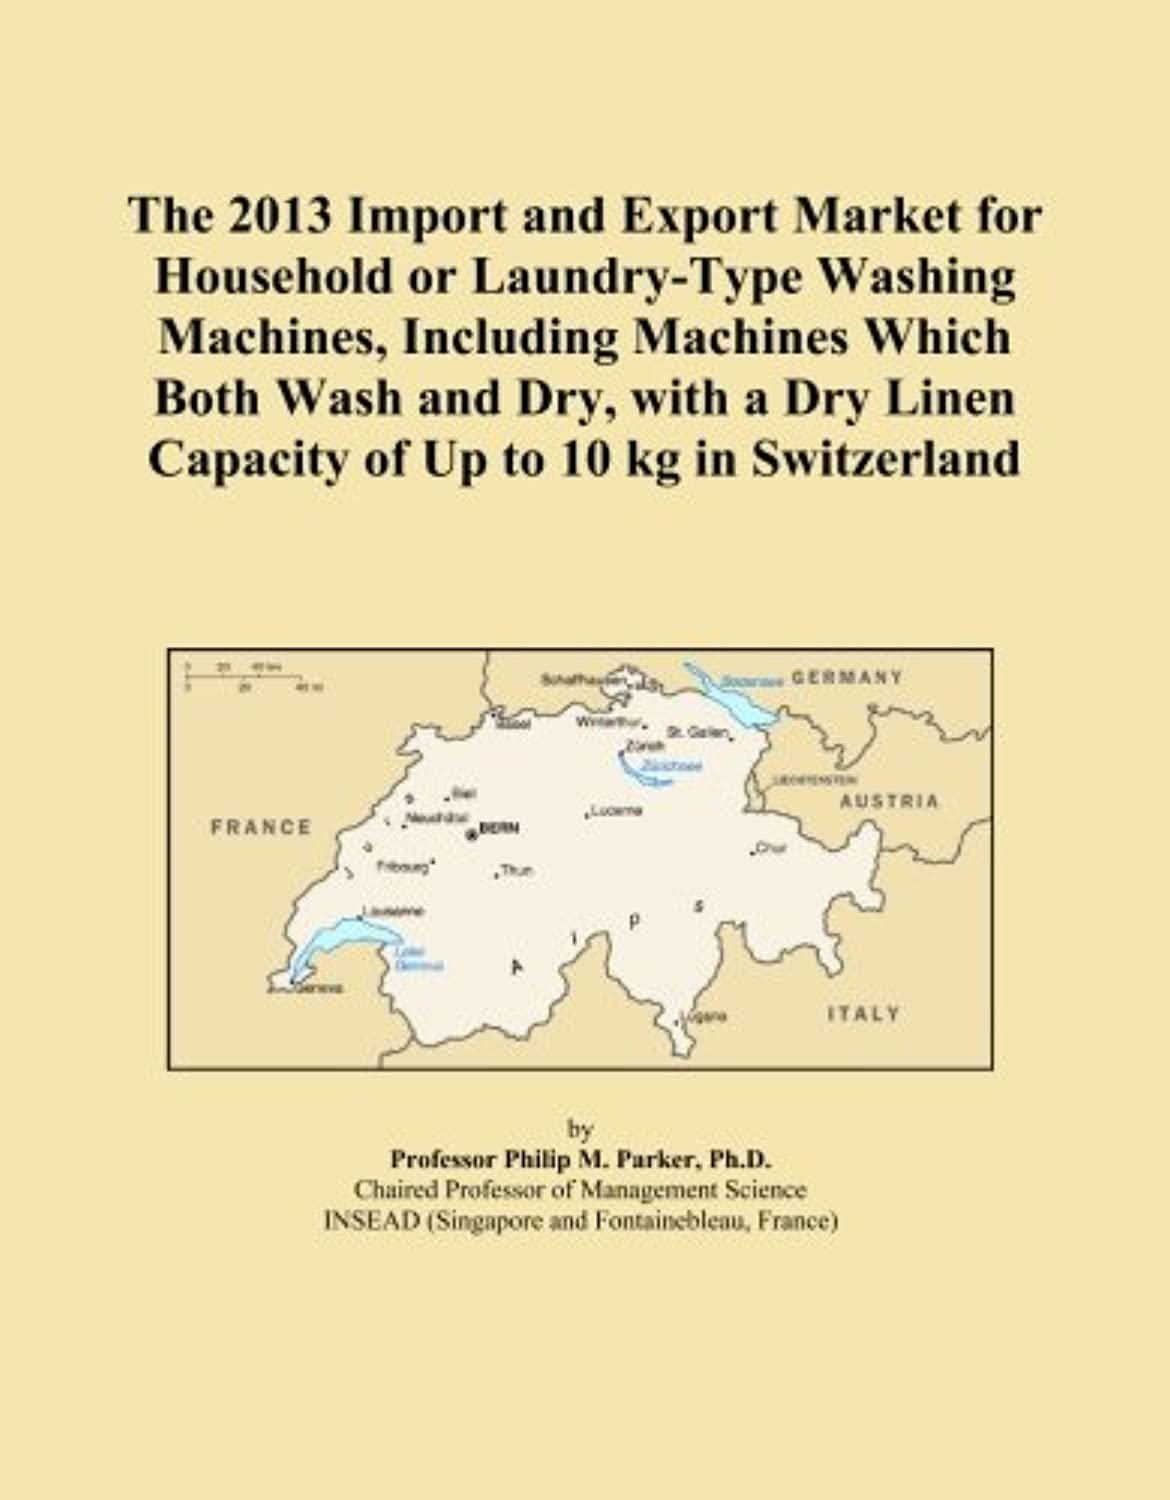 The 2013 Import and Export Market for Household or Laundry-Type Washing Machines, Including Machines Which Both Wash and Dry, with a Dry Linen Capacity of Up to 10 kg in Switzerland